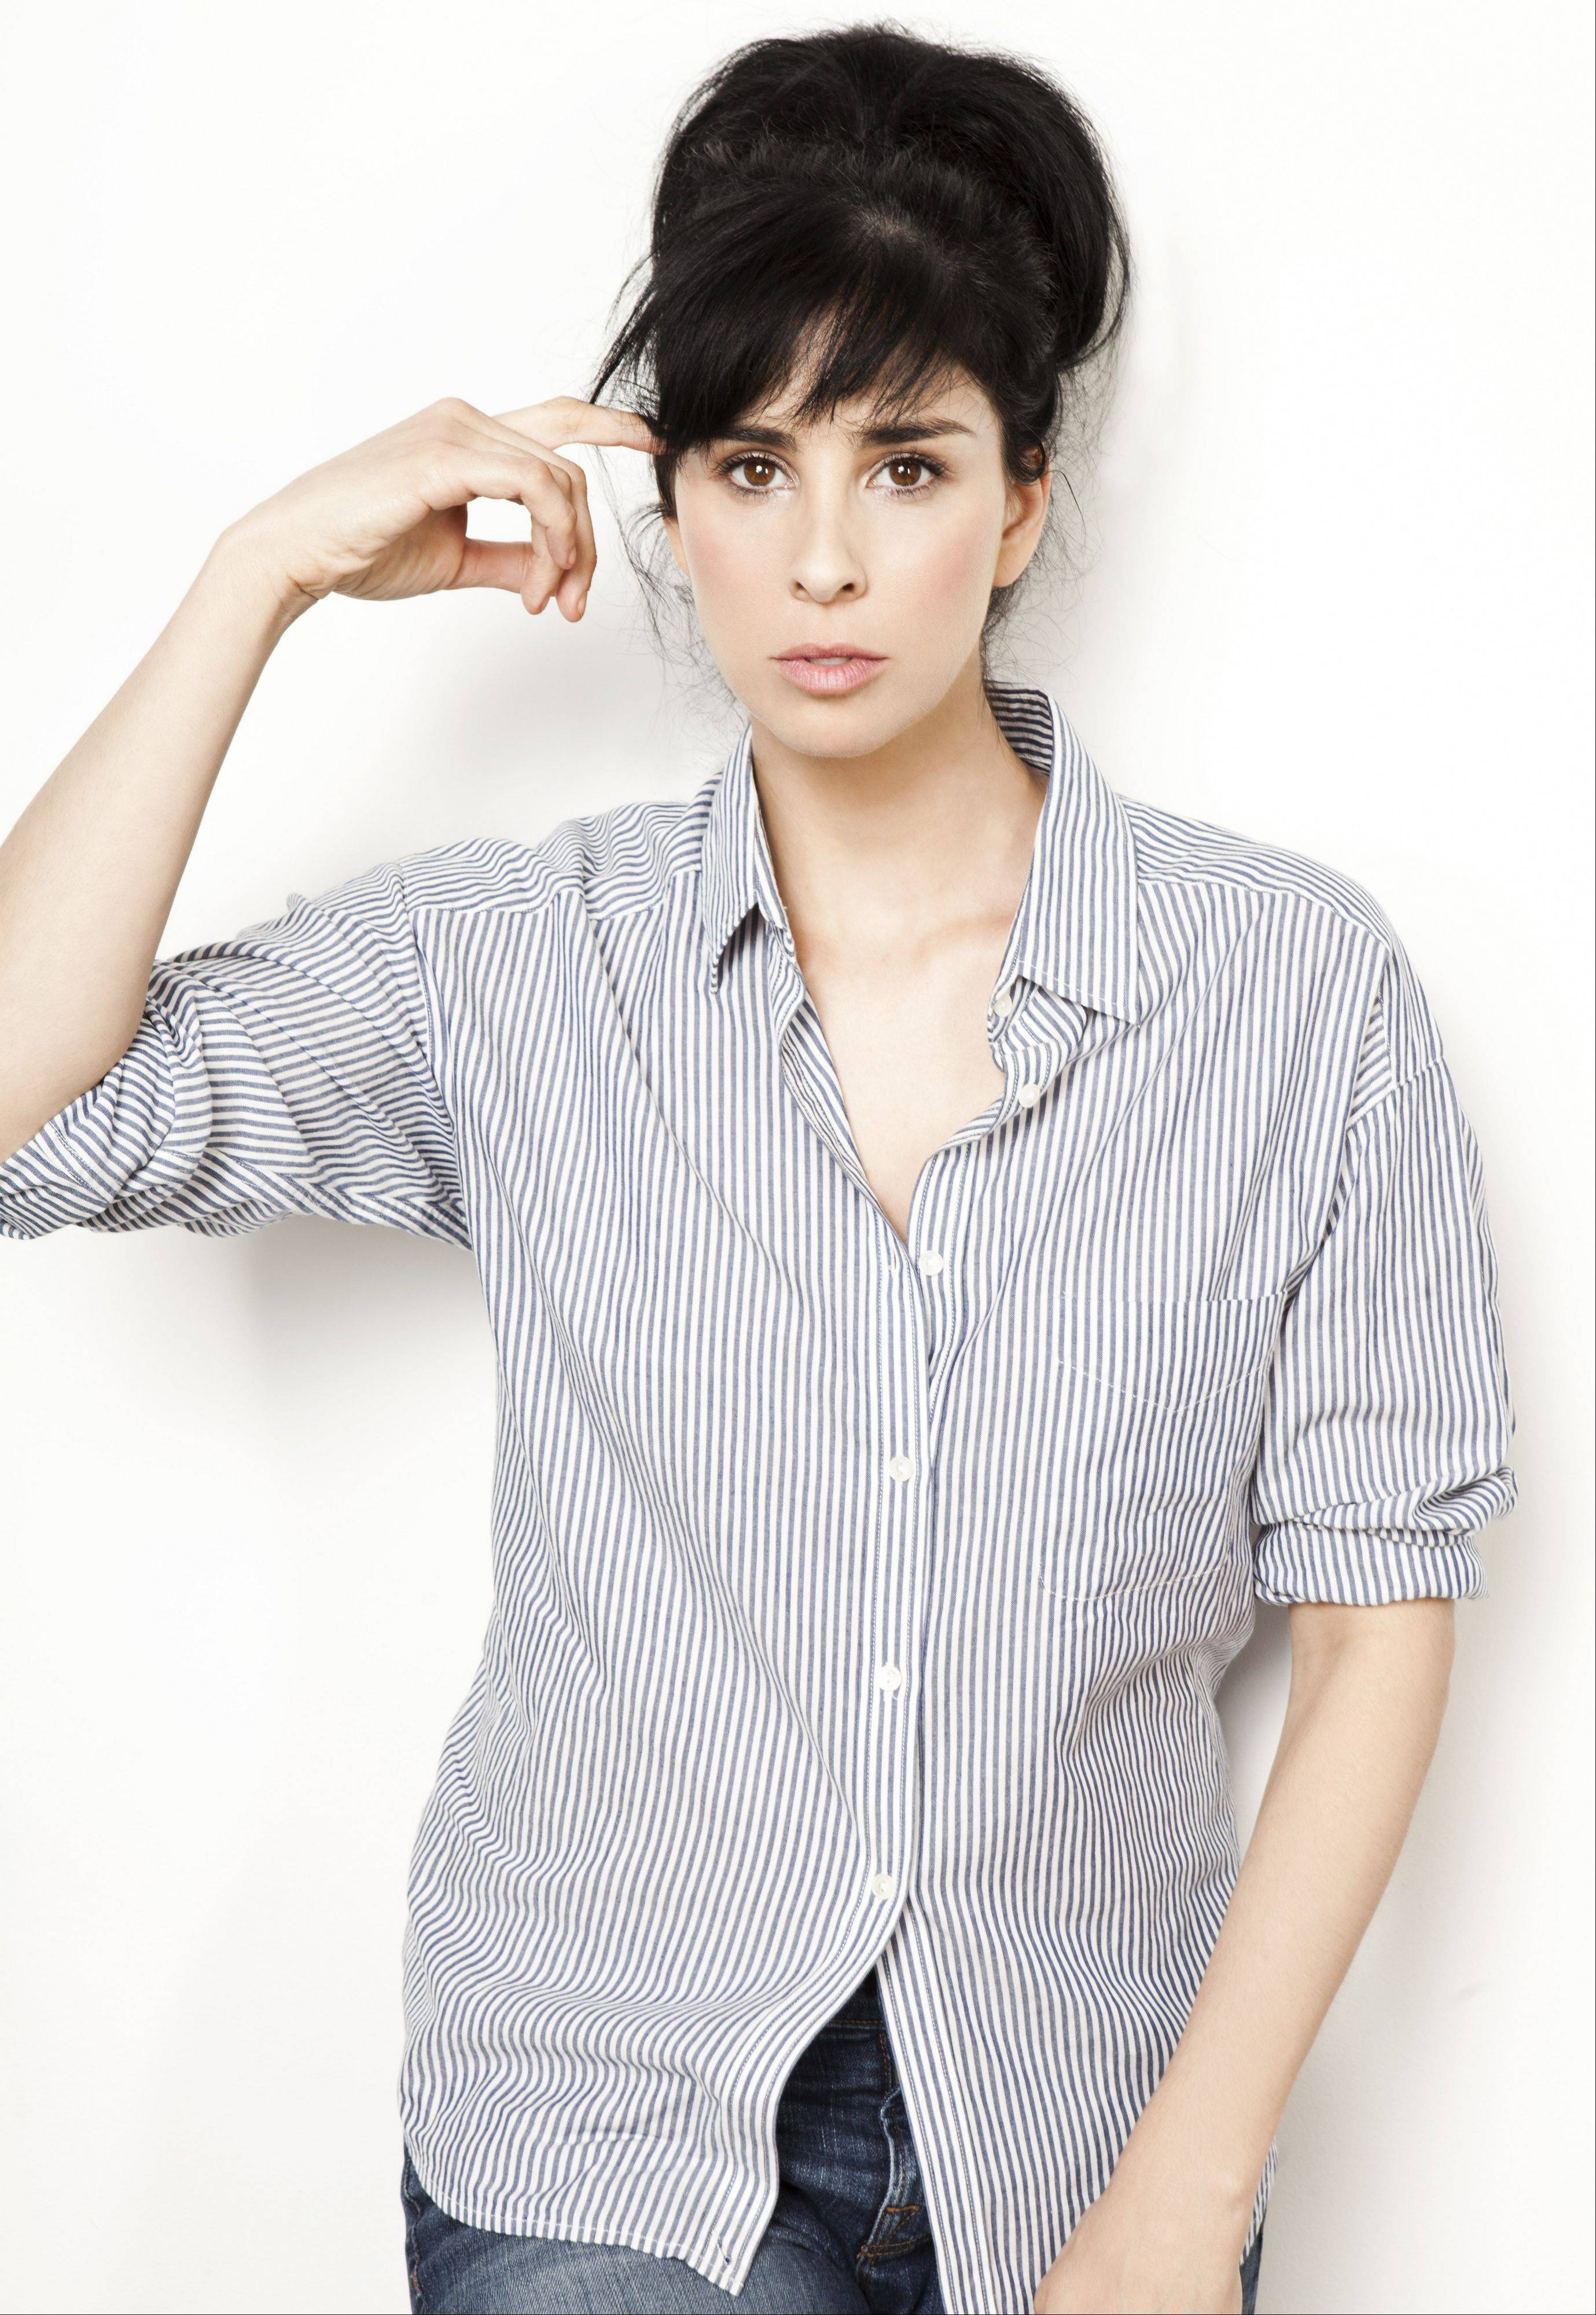 """Sarah Silverman's Pro-Choice"" plays the Chicago Theatre at 7:30 and 10:30 p.m. Saturday, June 16, for Just for Laughs Chicago."